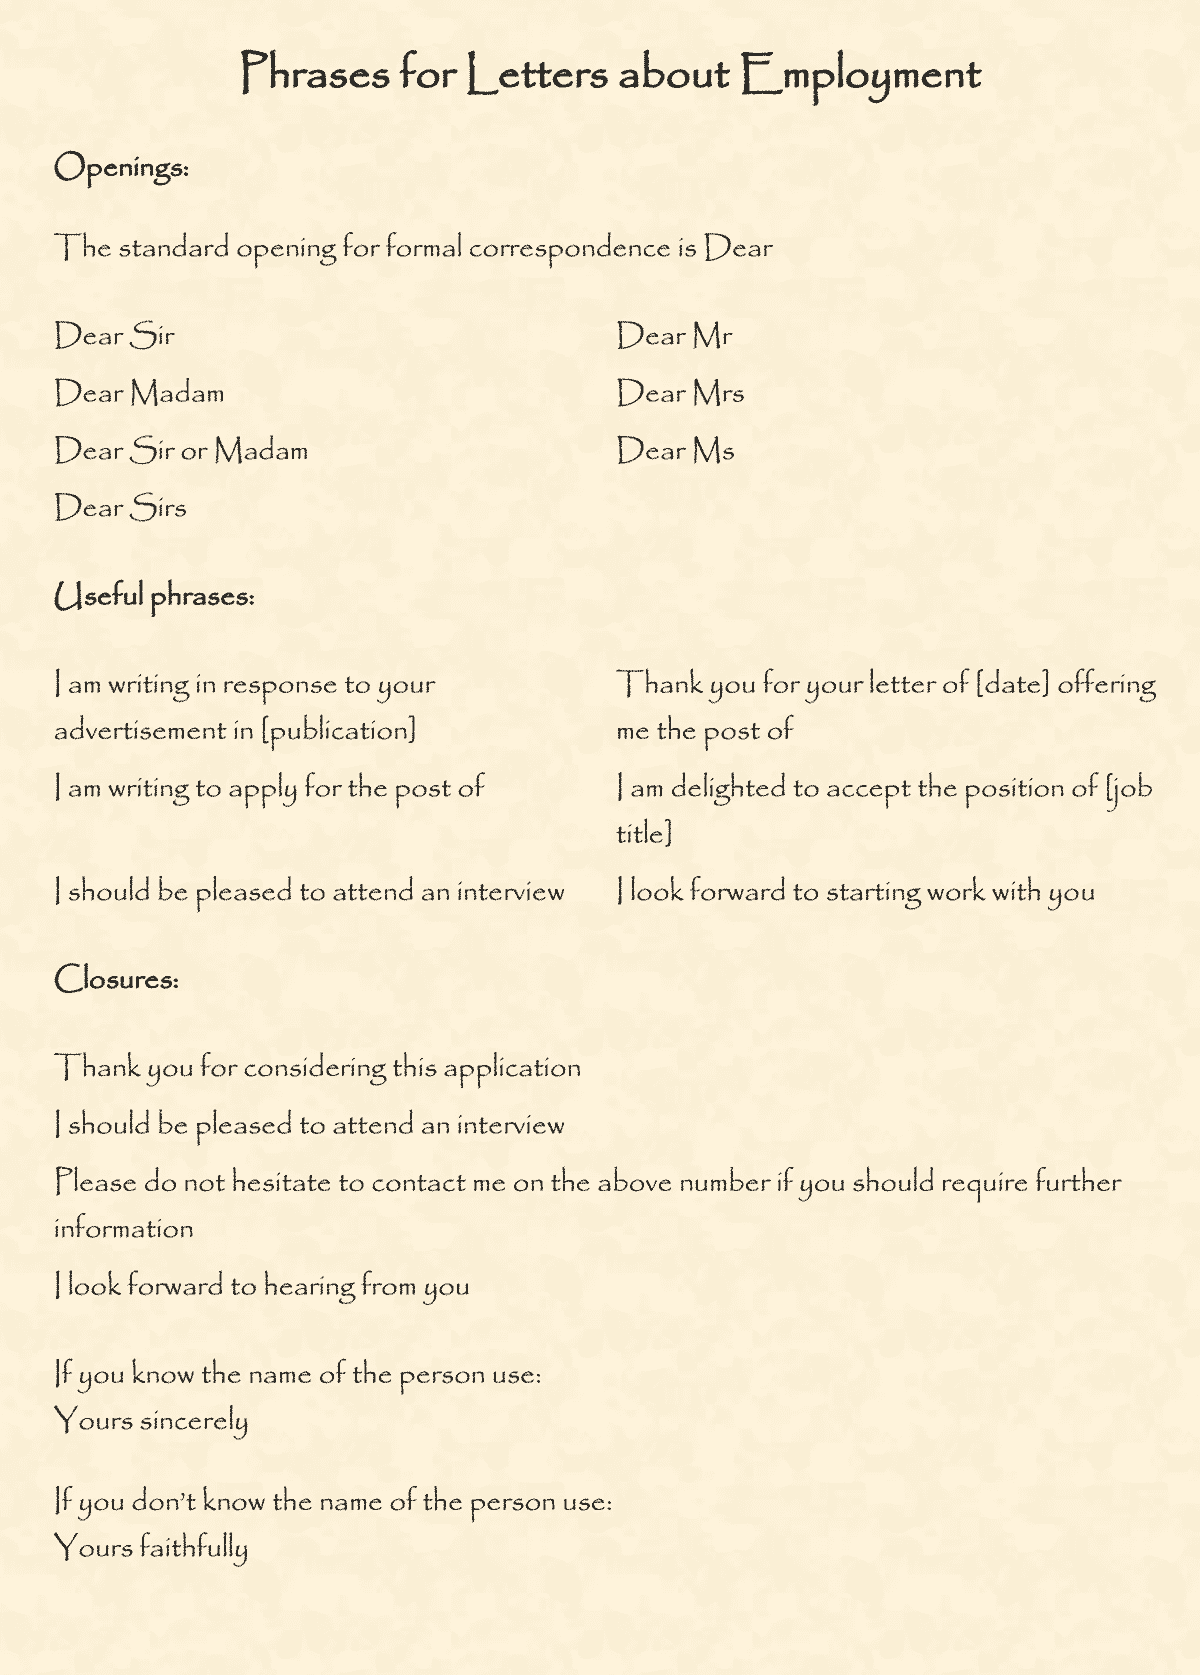 Phrases and Vocabulary for Writing Letters